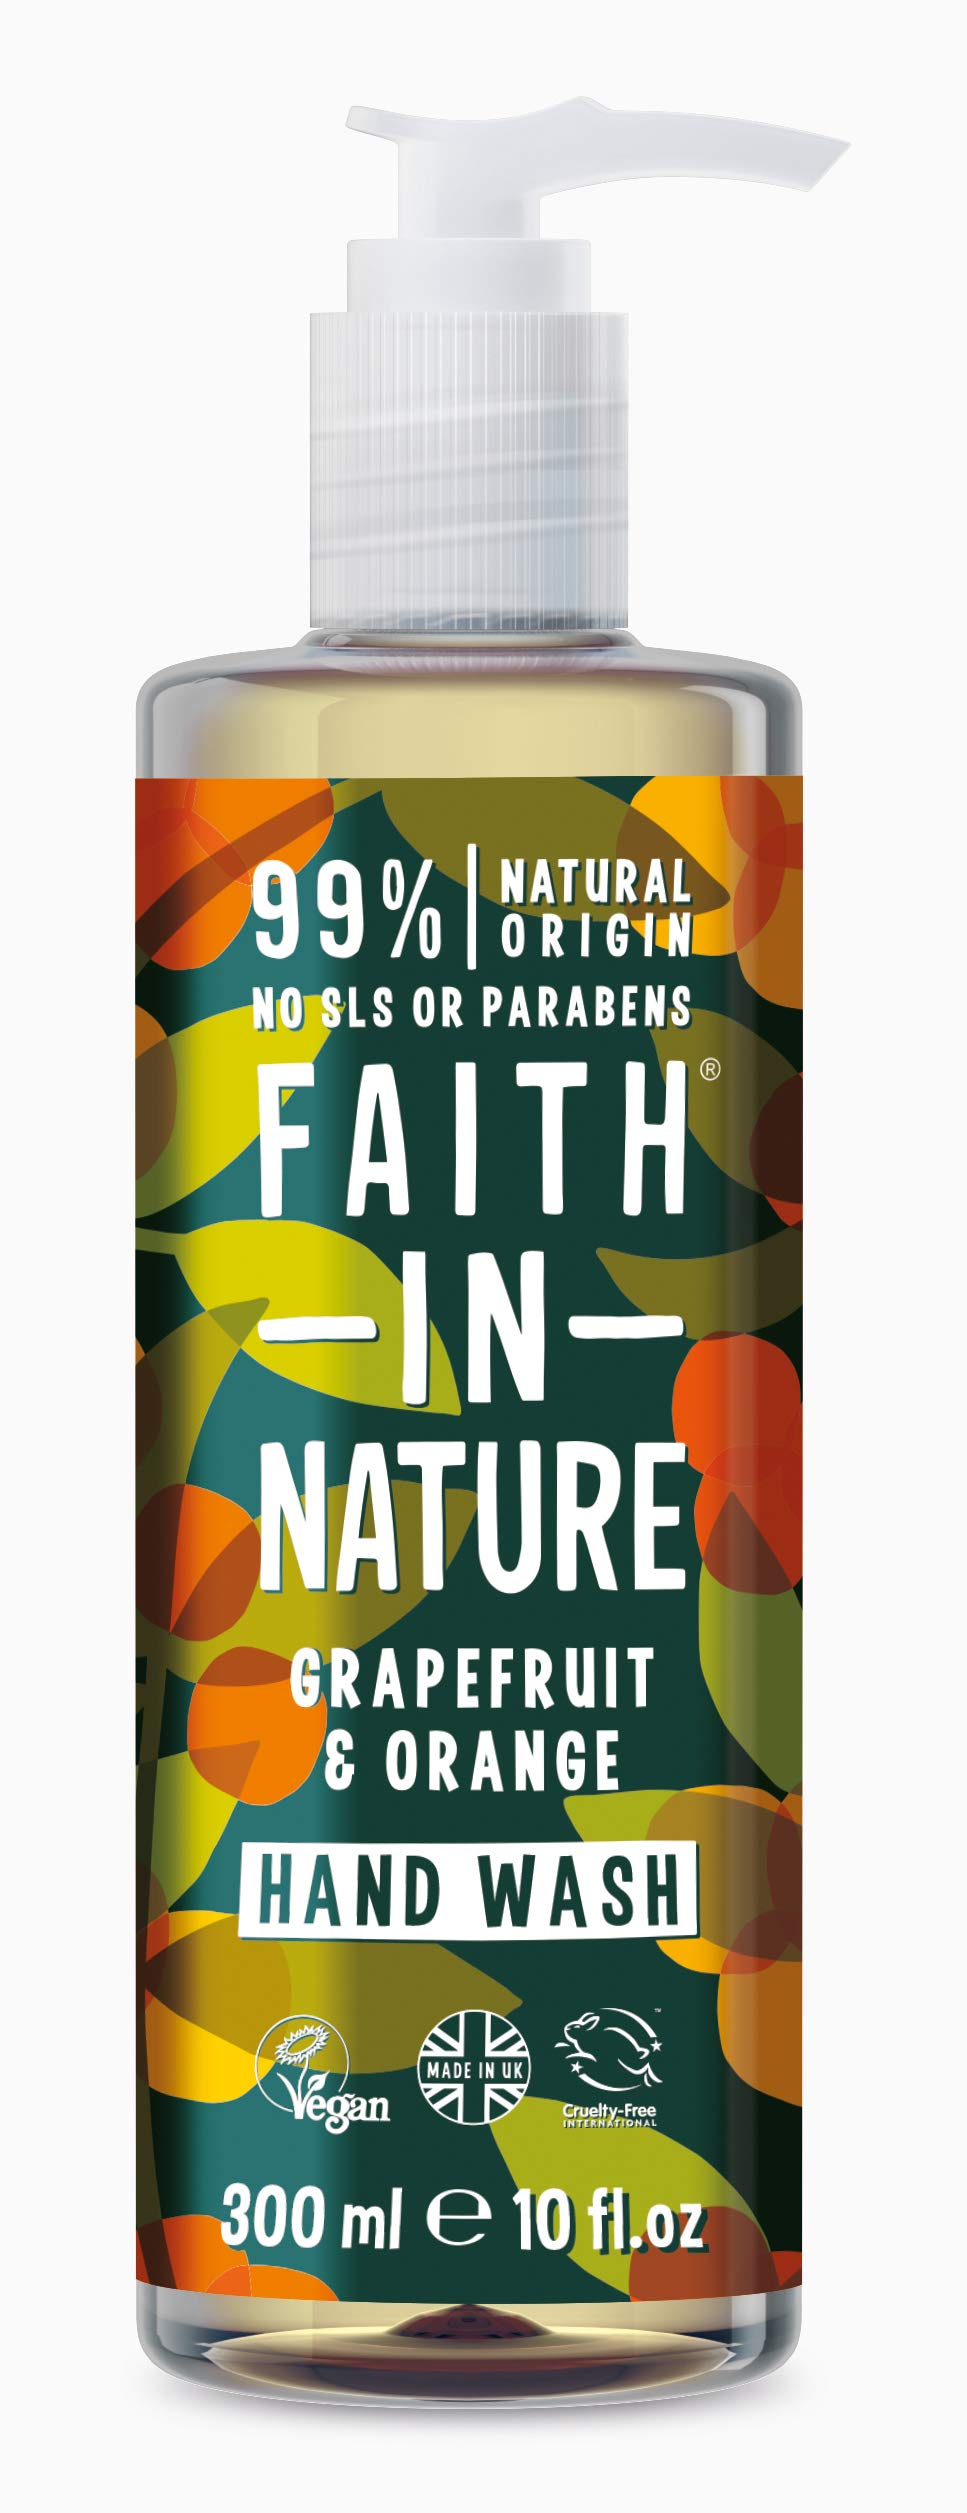 Faith in Nature, Organic Grapefruit and Orange Hand Wash, 300ml